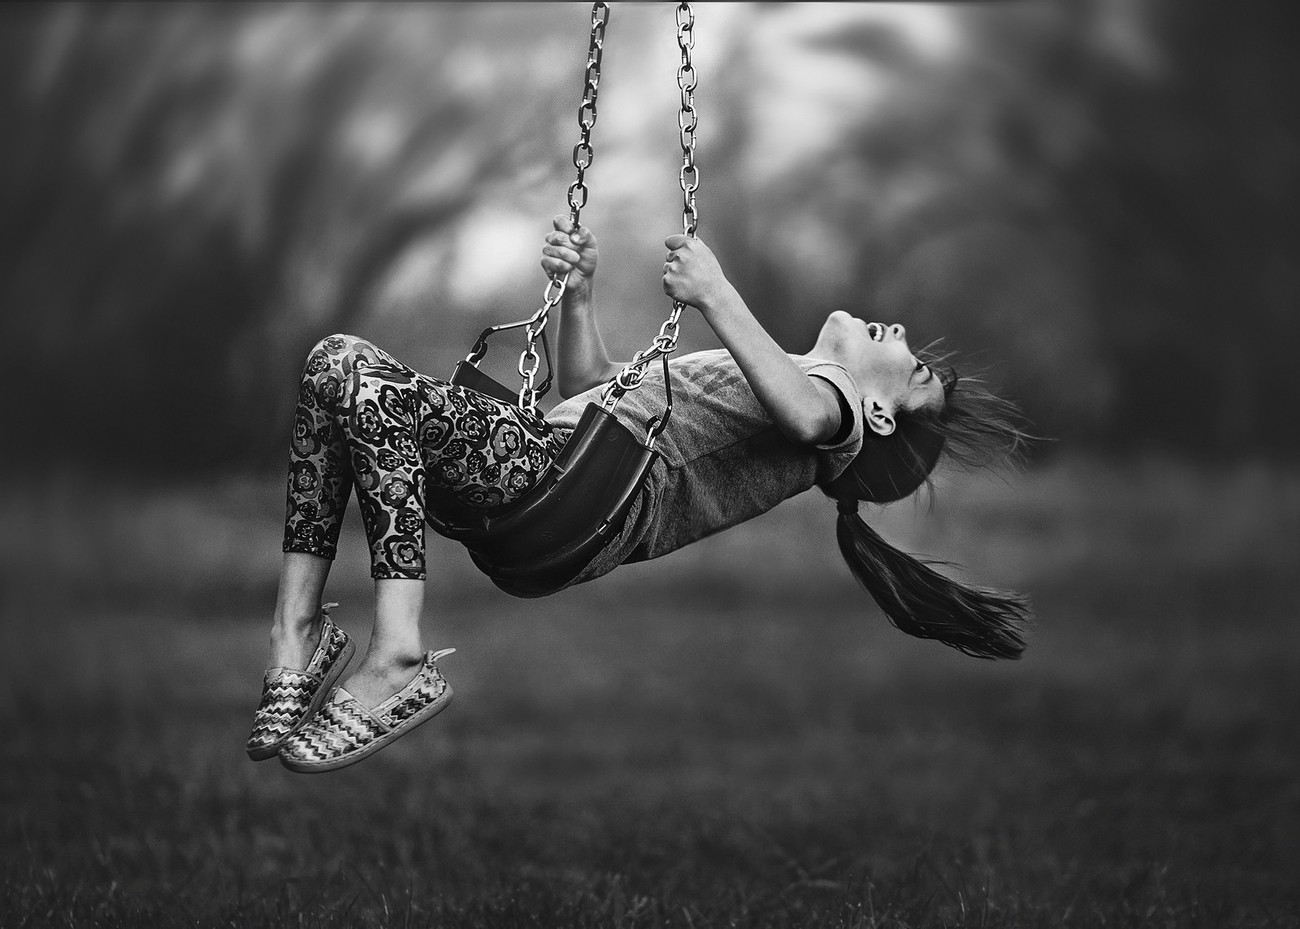 38+ Incredible Photographers Share Their Best Shots Of Kids Being Kids